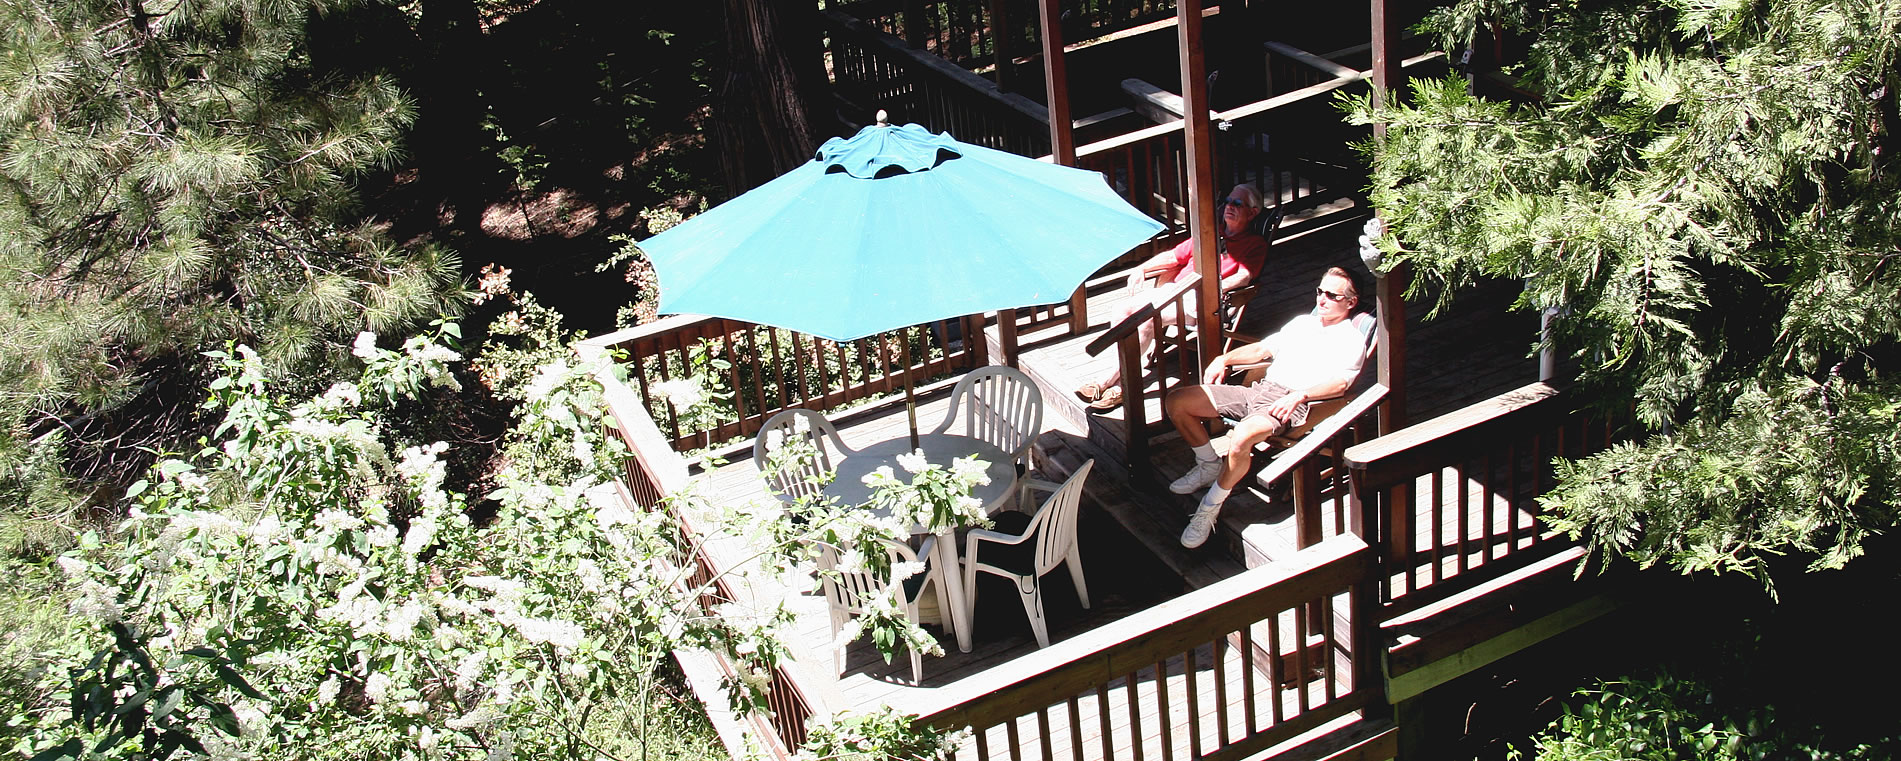 mccafrey-house-bed-breakfast-sundeck